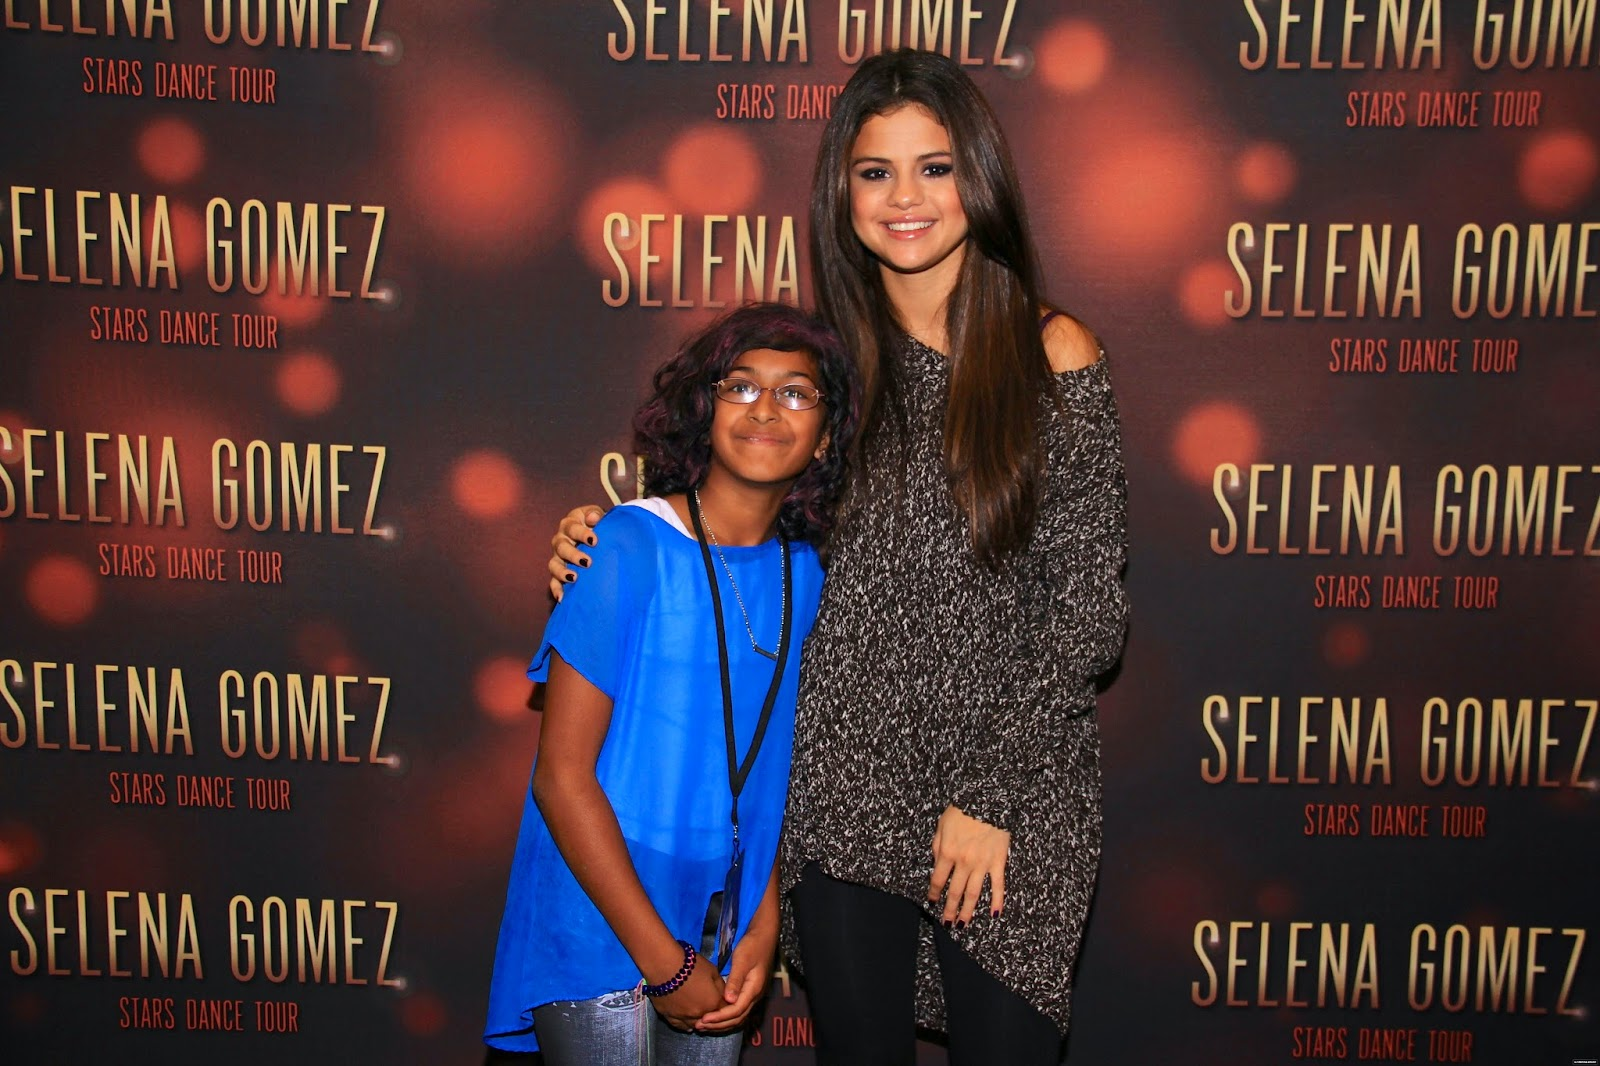 meet and greet selena gomez tickets 2015